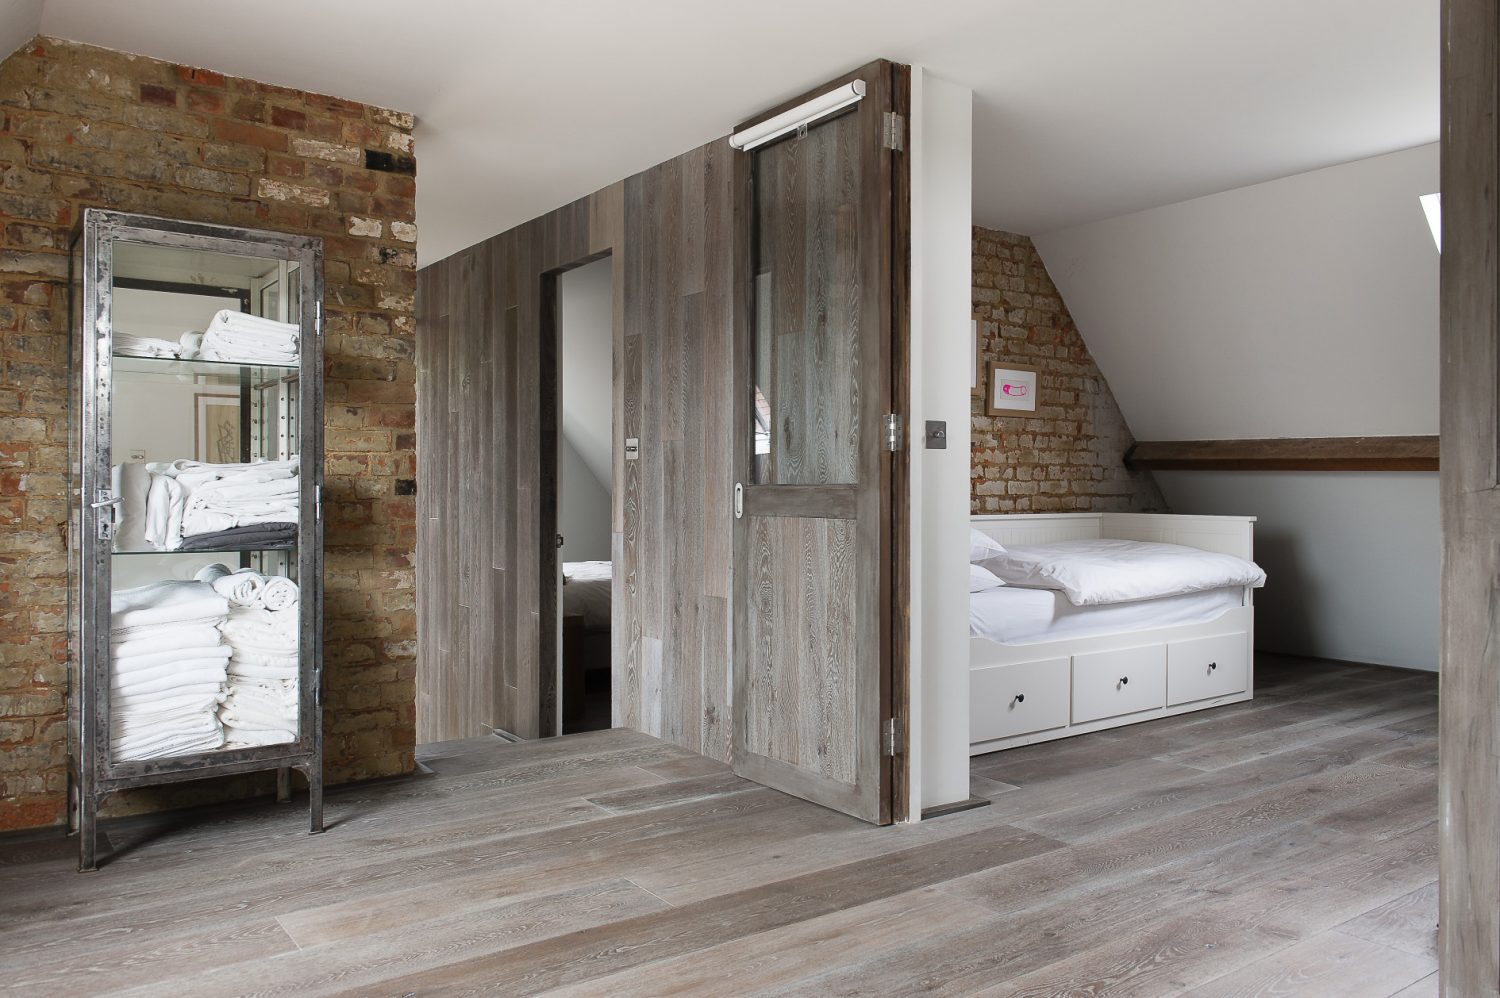 Throughout the house, exposed brickwork contrasts with the highly finished, sleek timber cladding and floorboards.Son Lucas's room has been designed to function as both a sleeping and study or games room. This is achieved through the use of partition doors that open out, or give privacy, depending on requirements